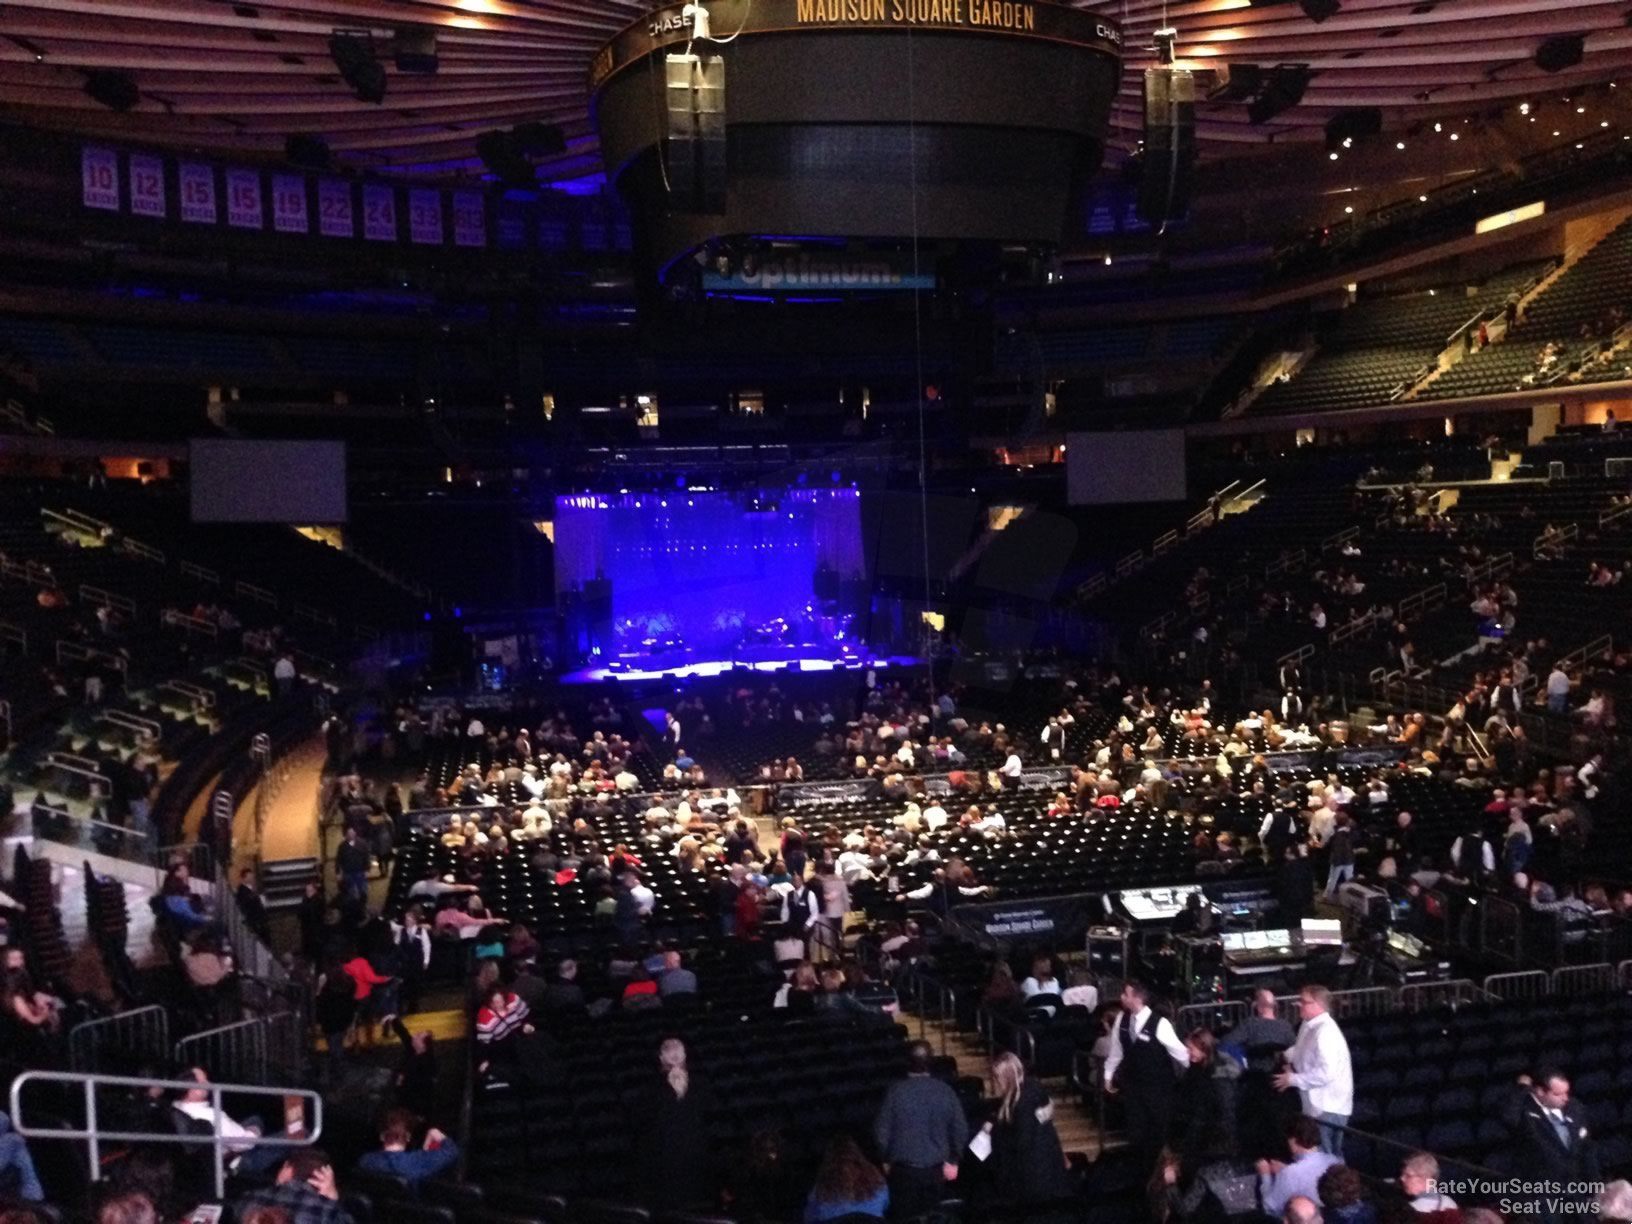 Madison Square Garden Section 101 Concert Seating RateYourSeatscom